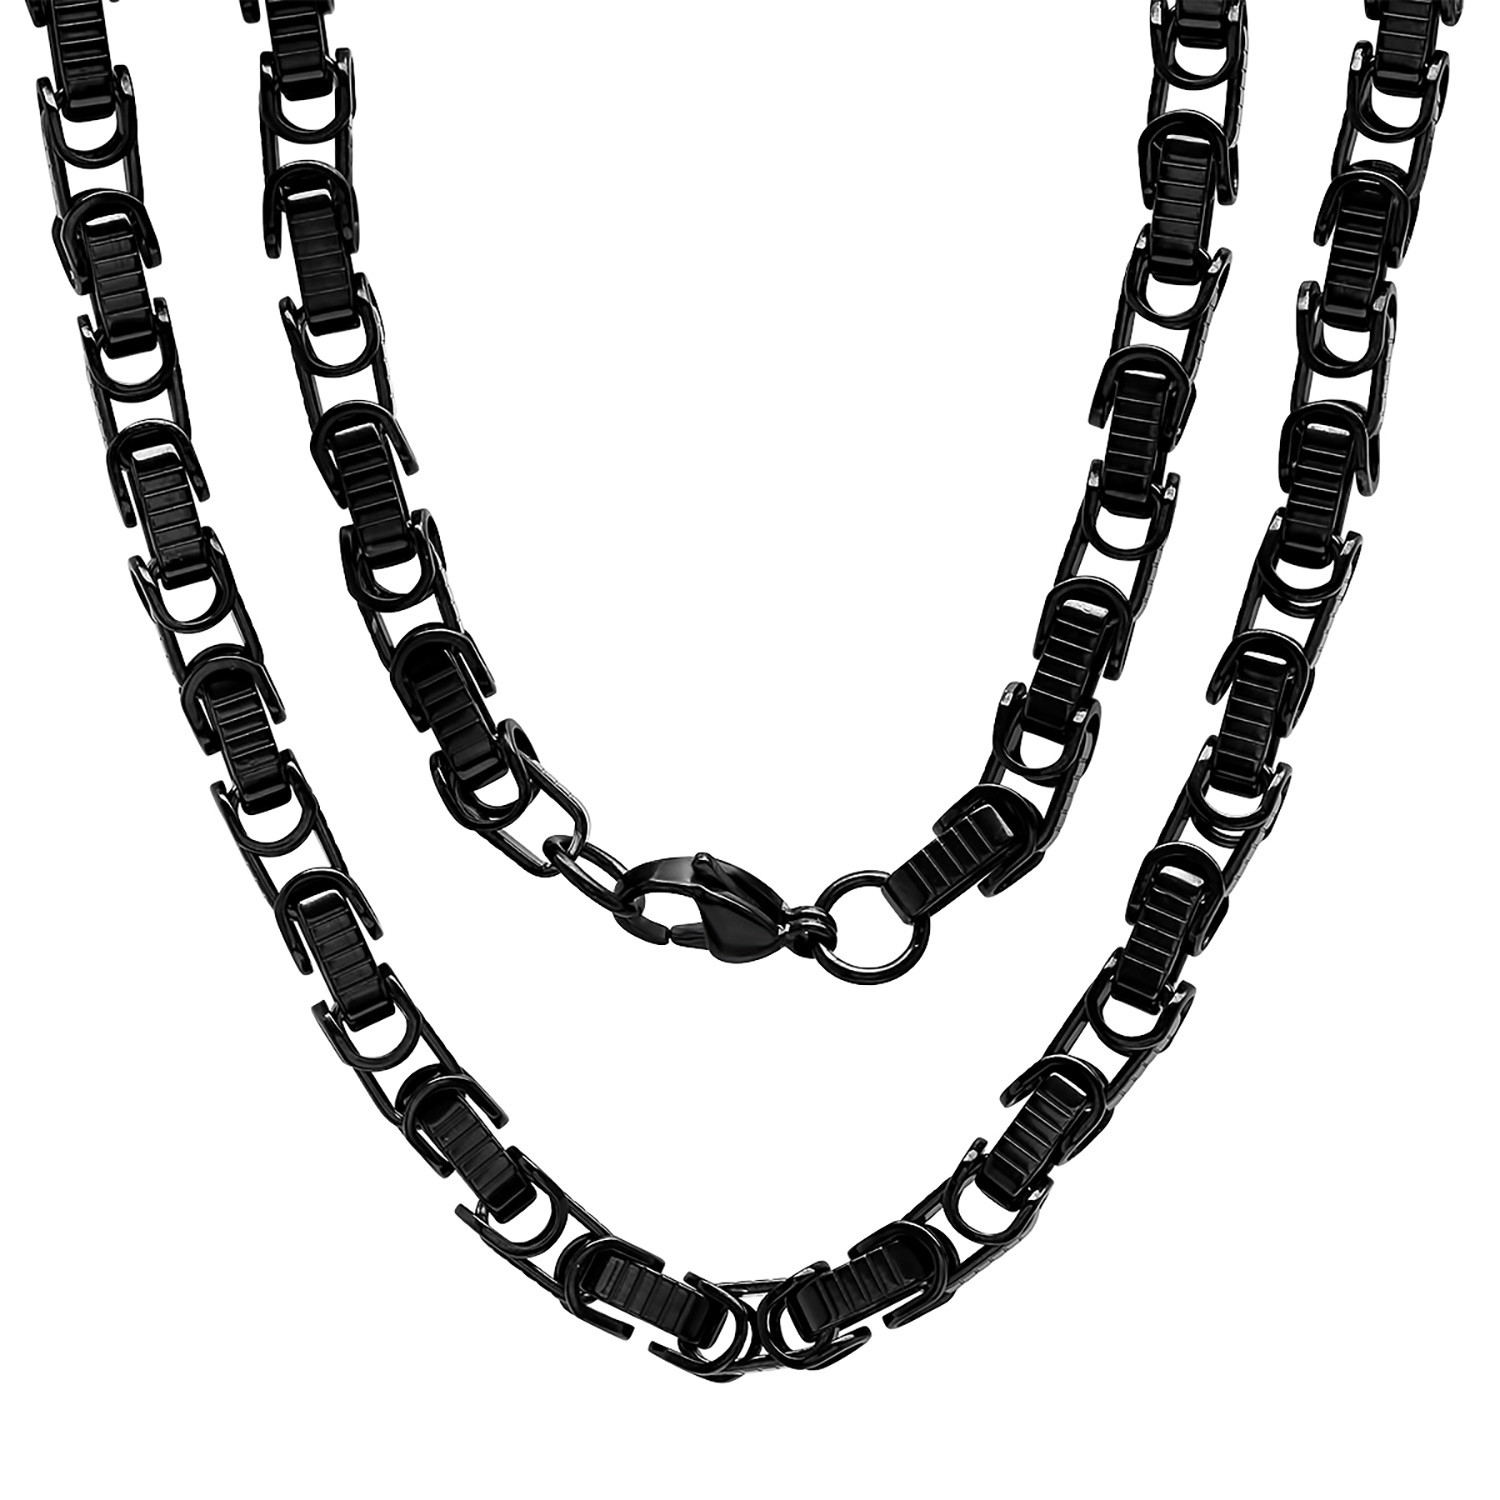 the necklaces realreal products byzantine chain necklace jewelry enlarged